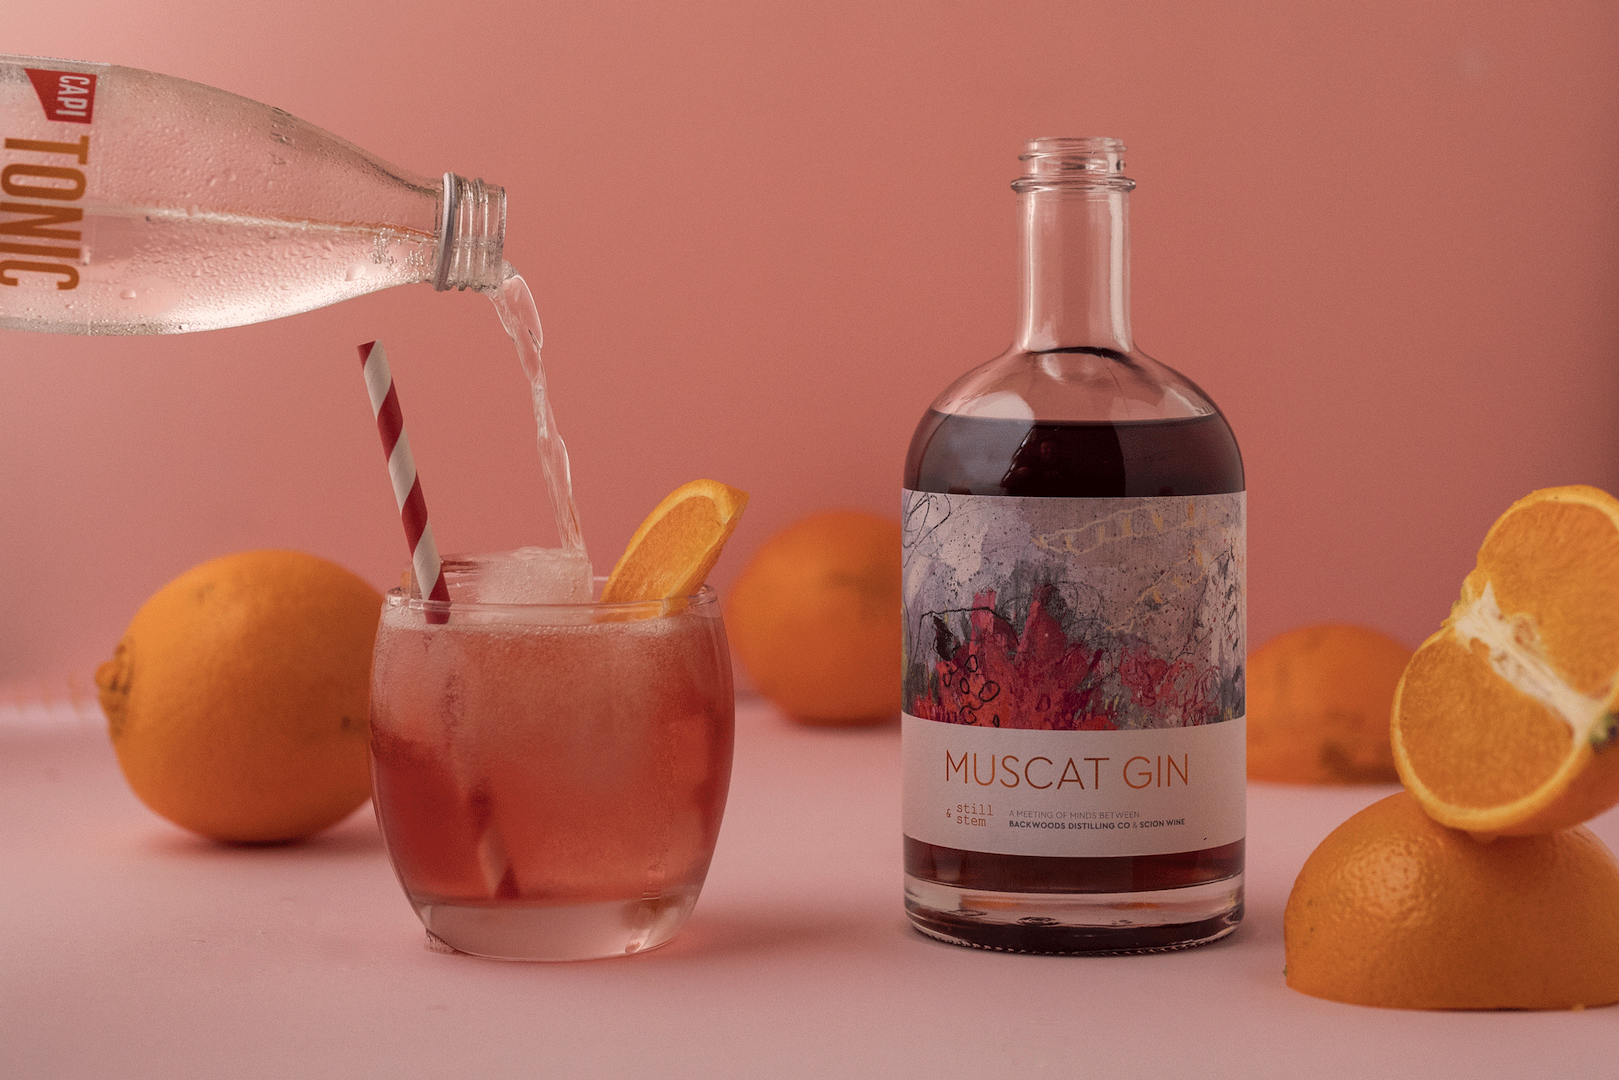 Muscat Gin